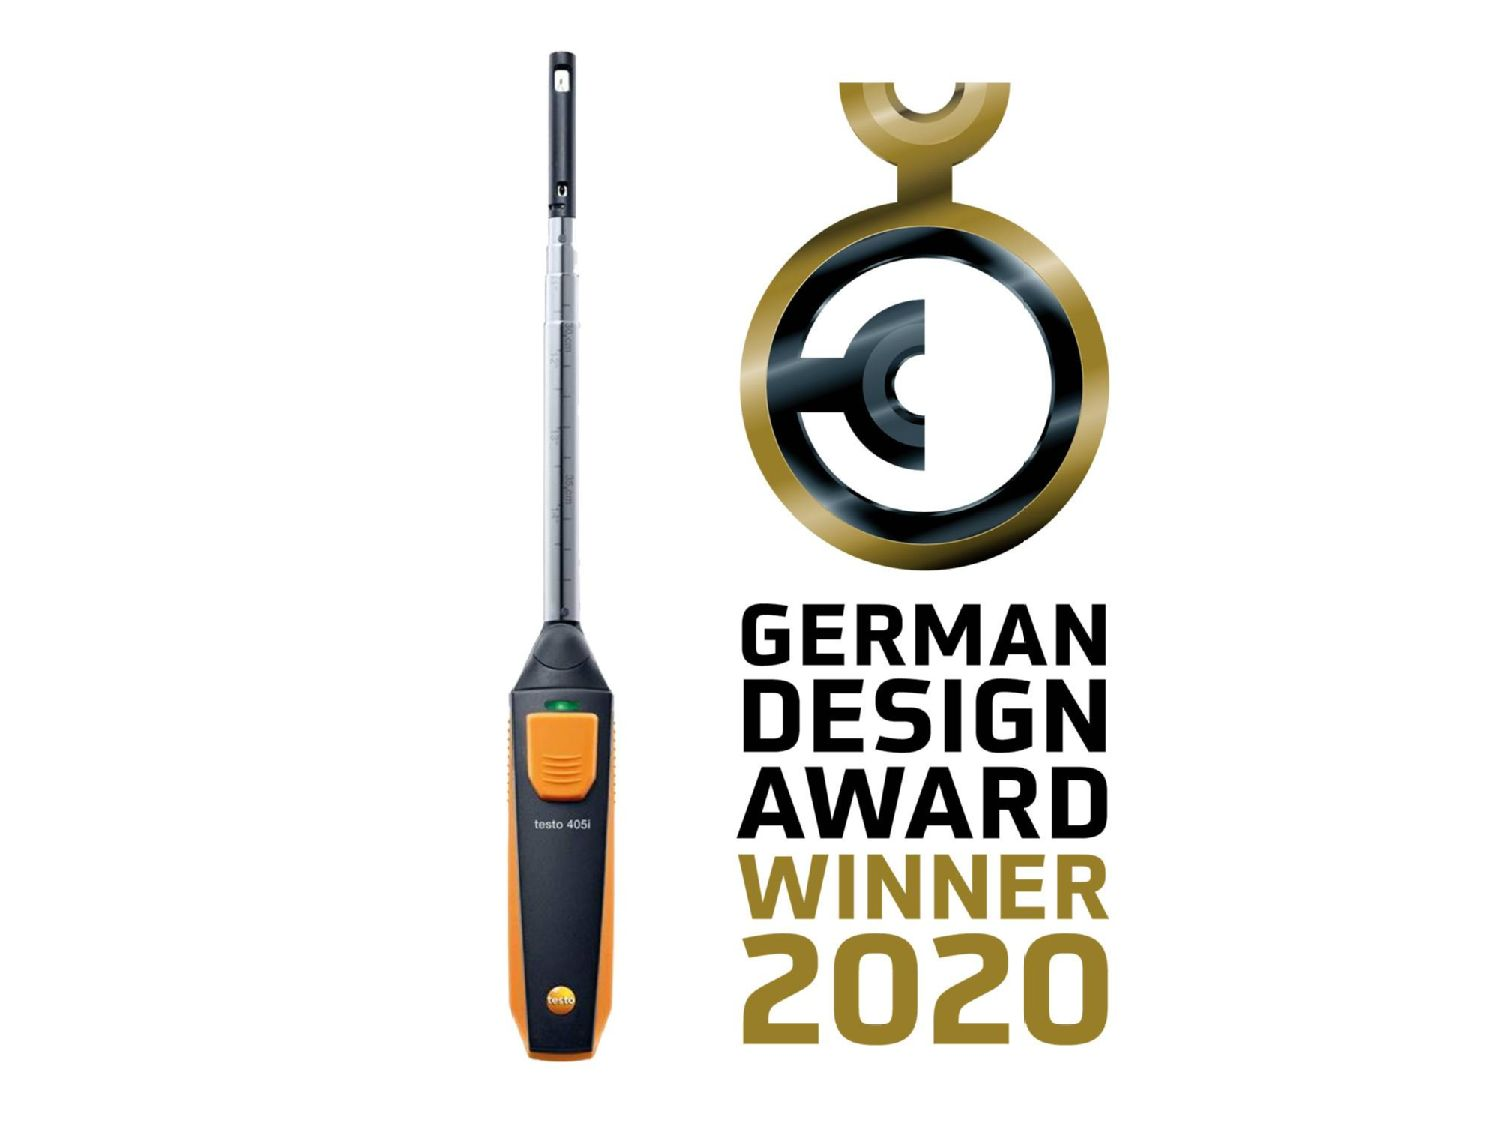 testo 405i German Design Award